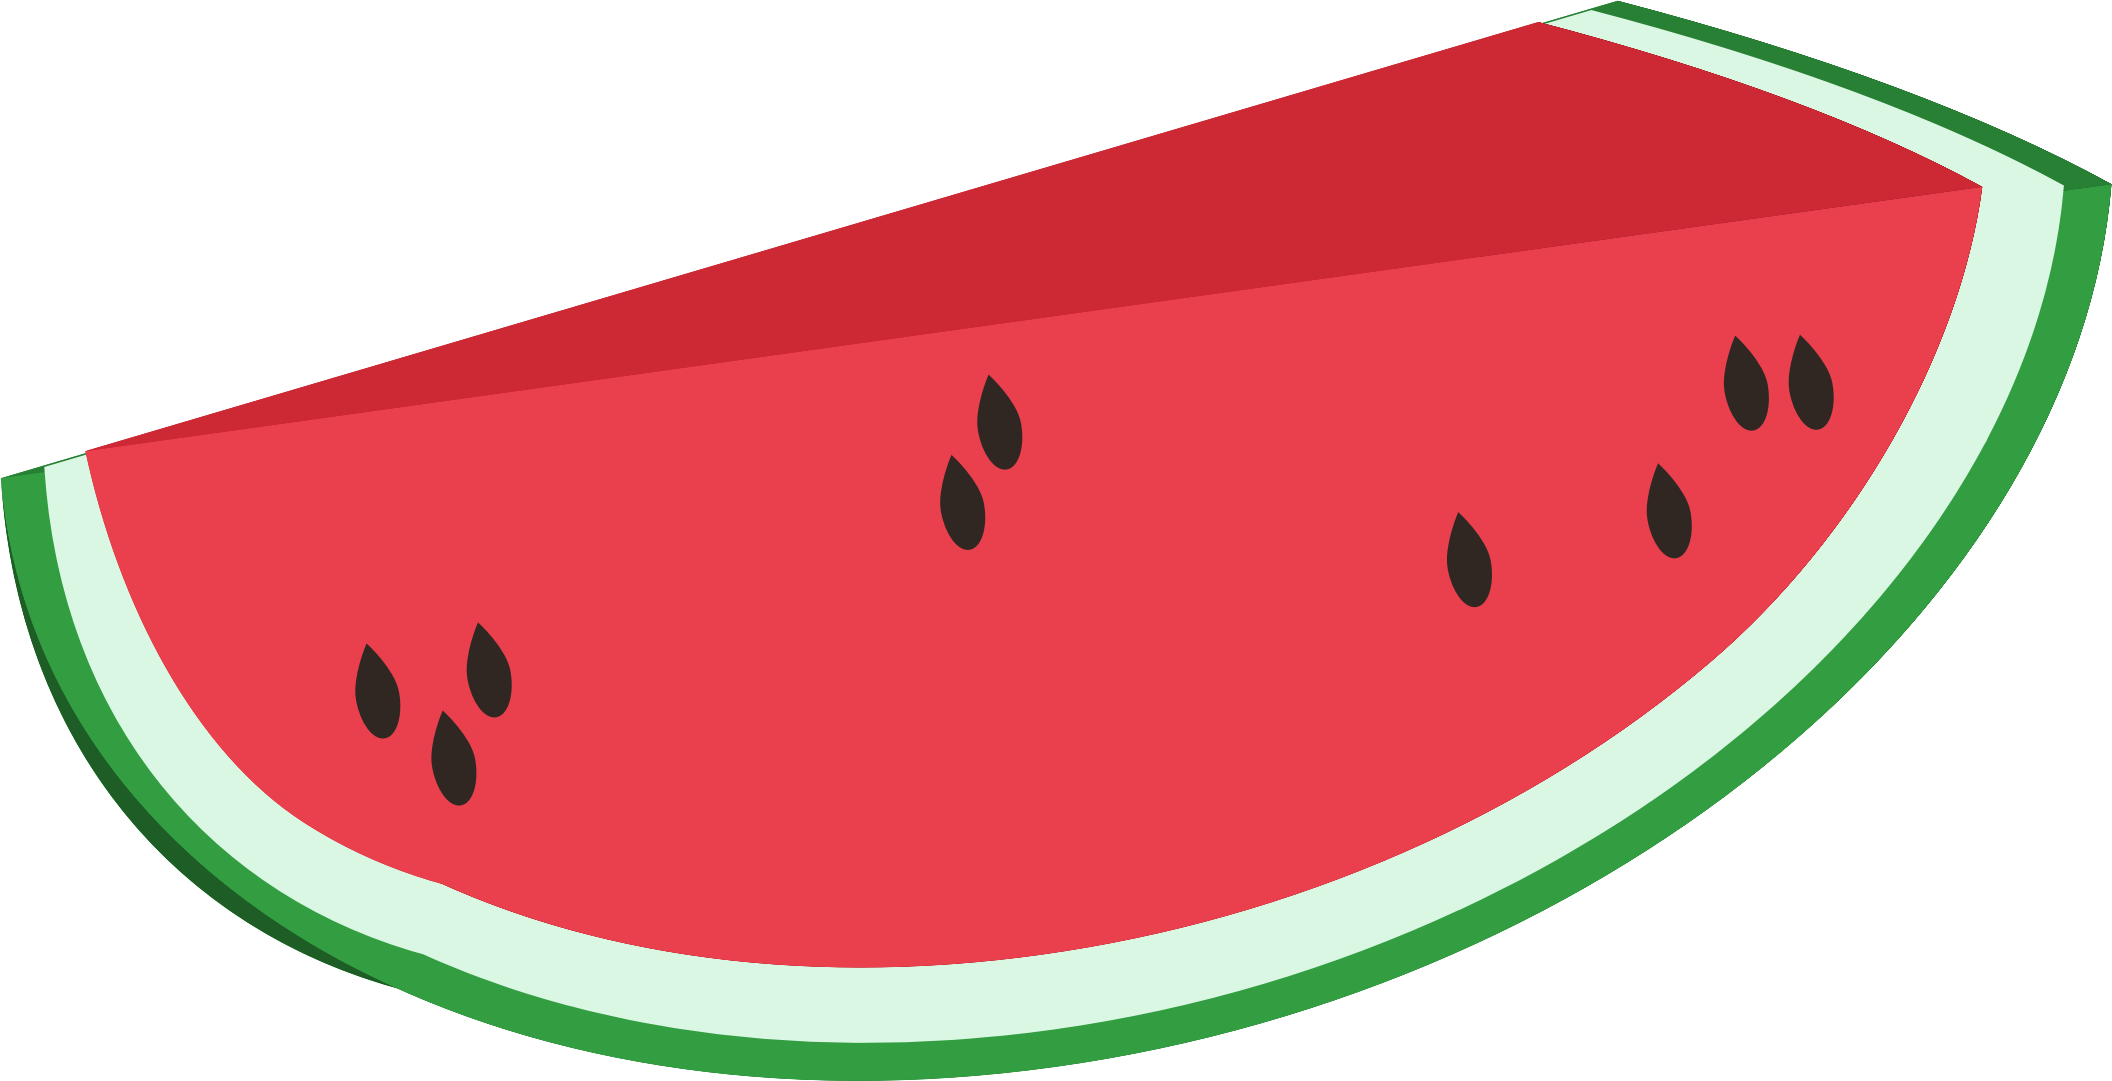 Watermelon دلاع by osfor.org